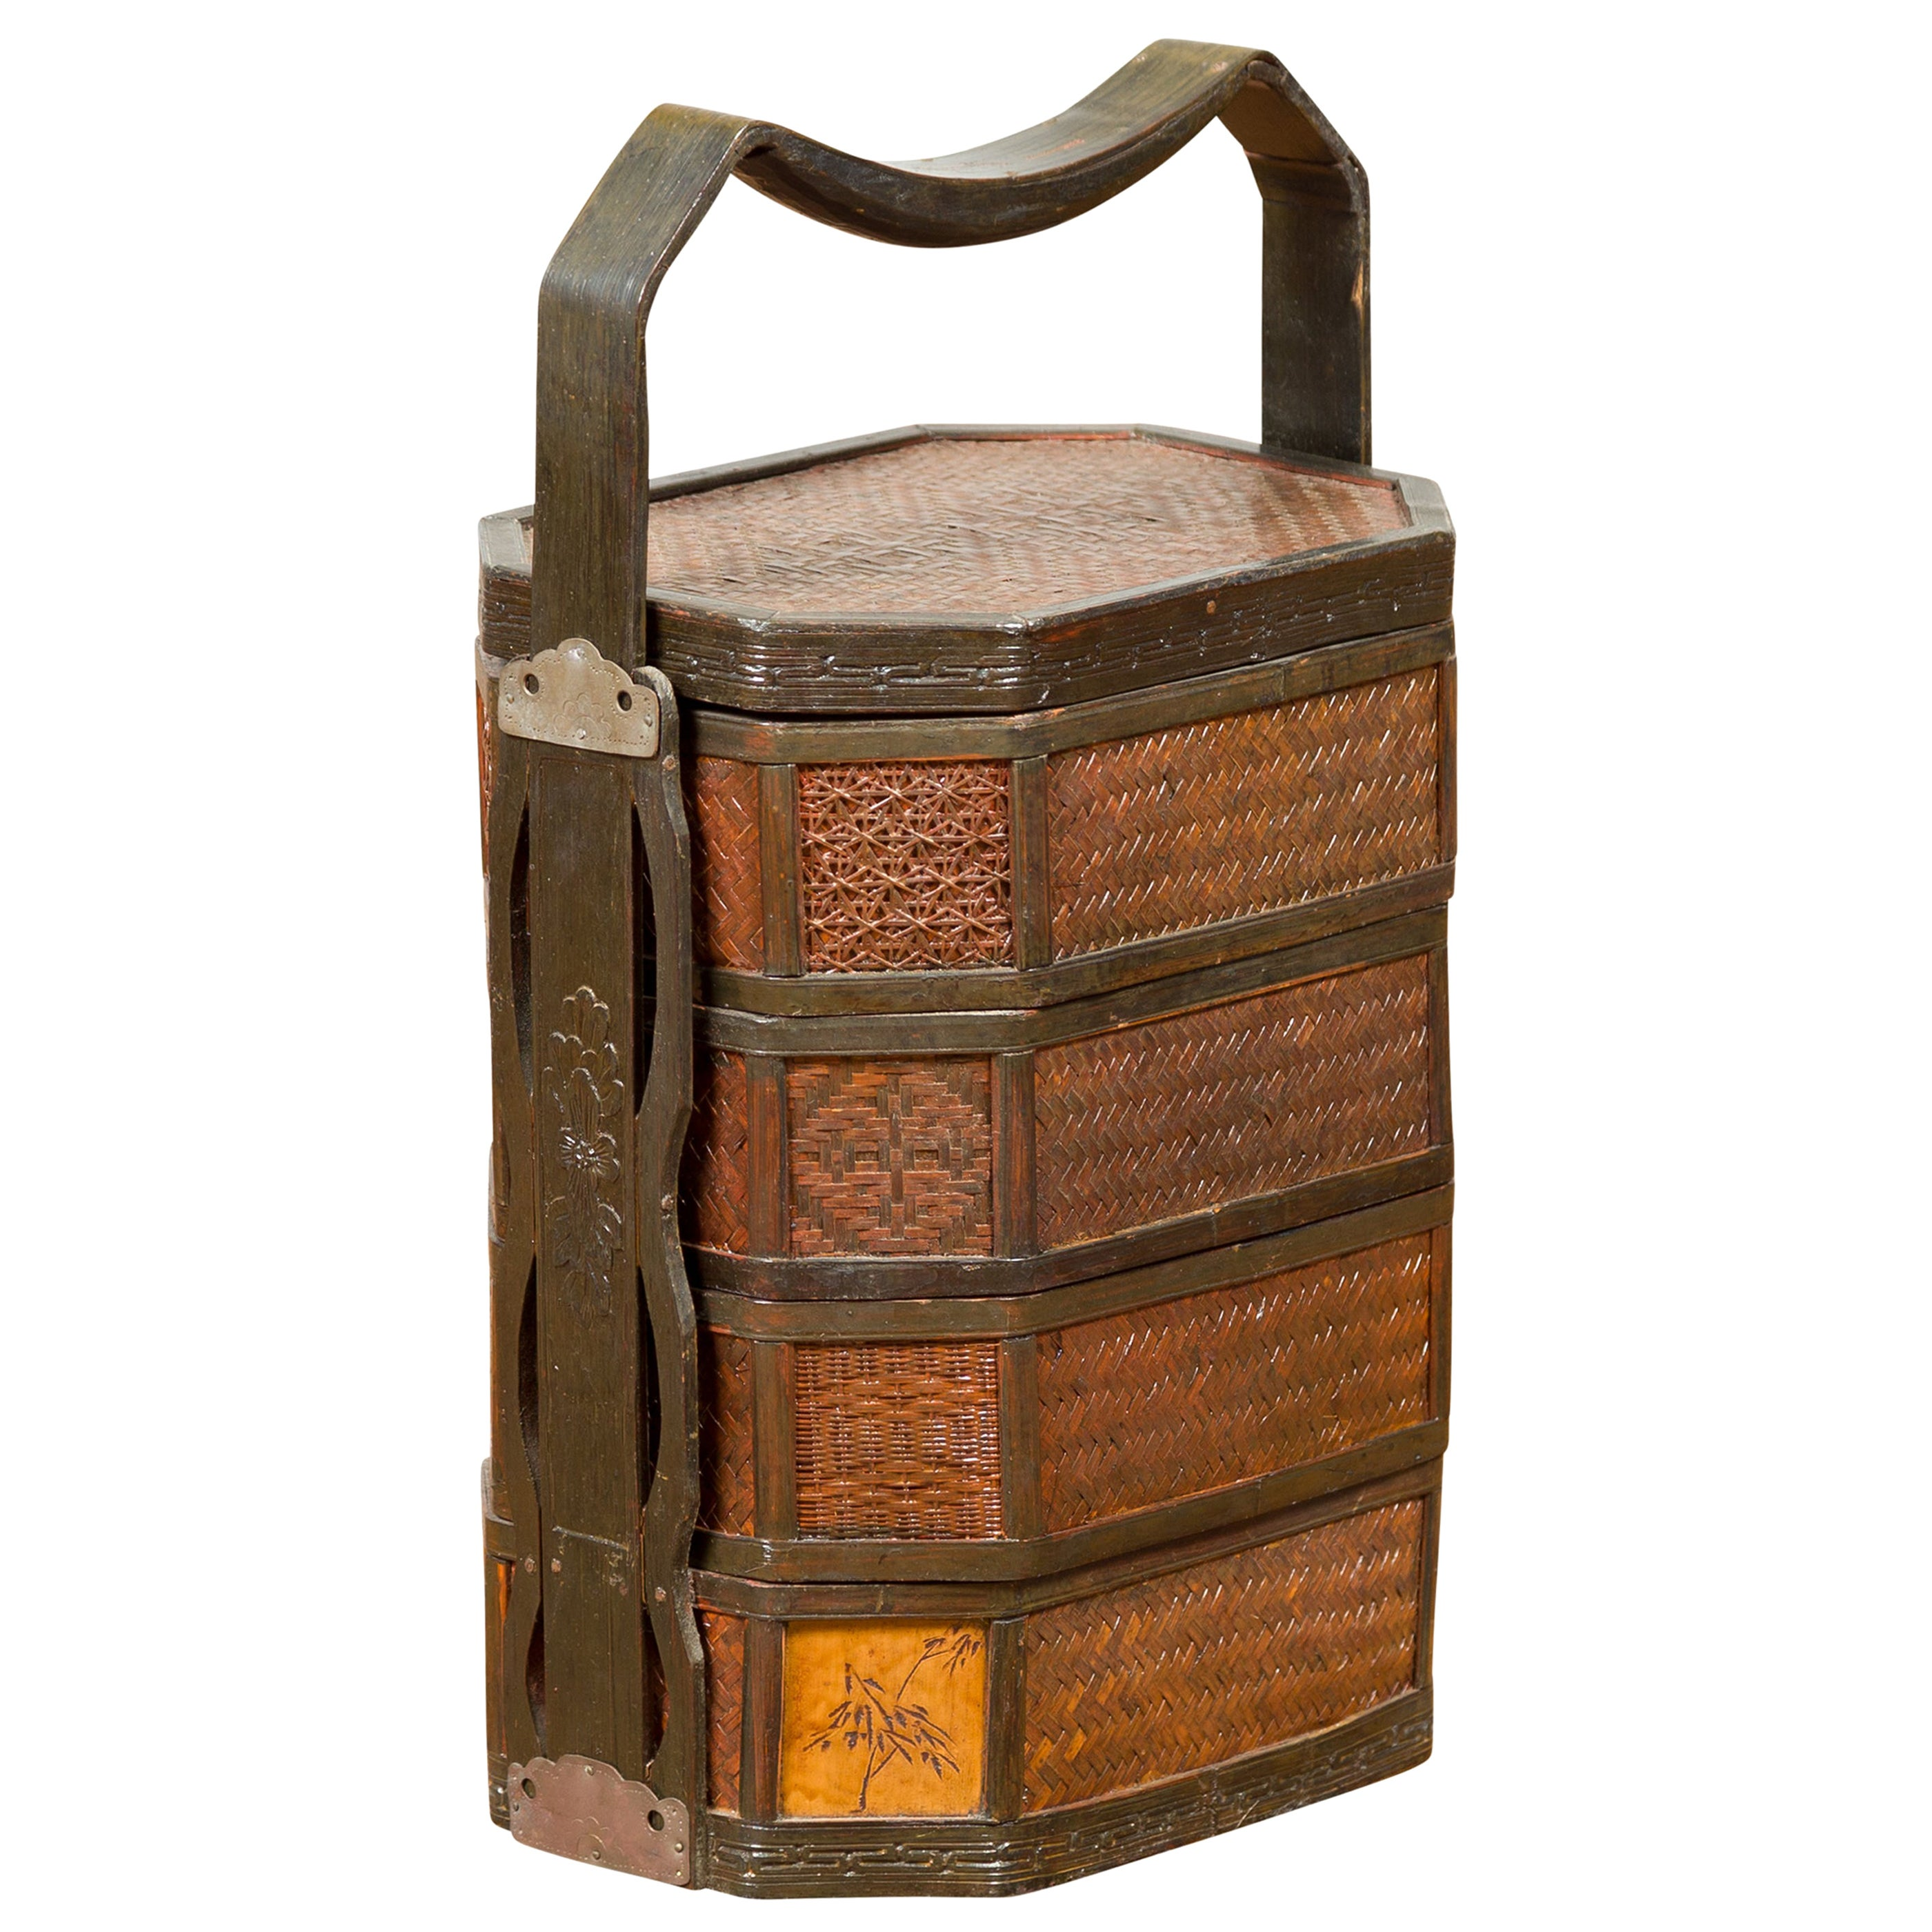 Chinese Antique Stacking Lunch Box with Lacquered Accents and Handle